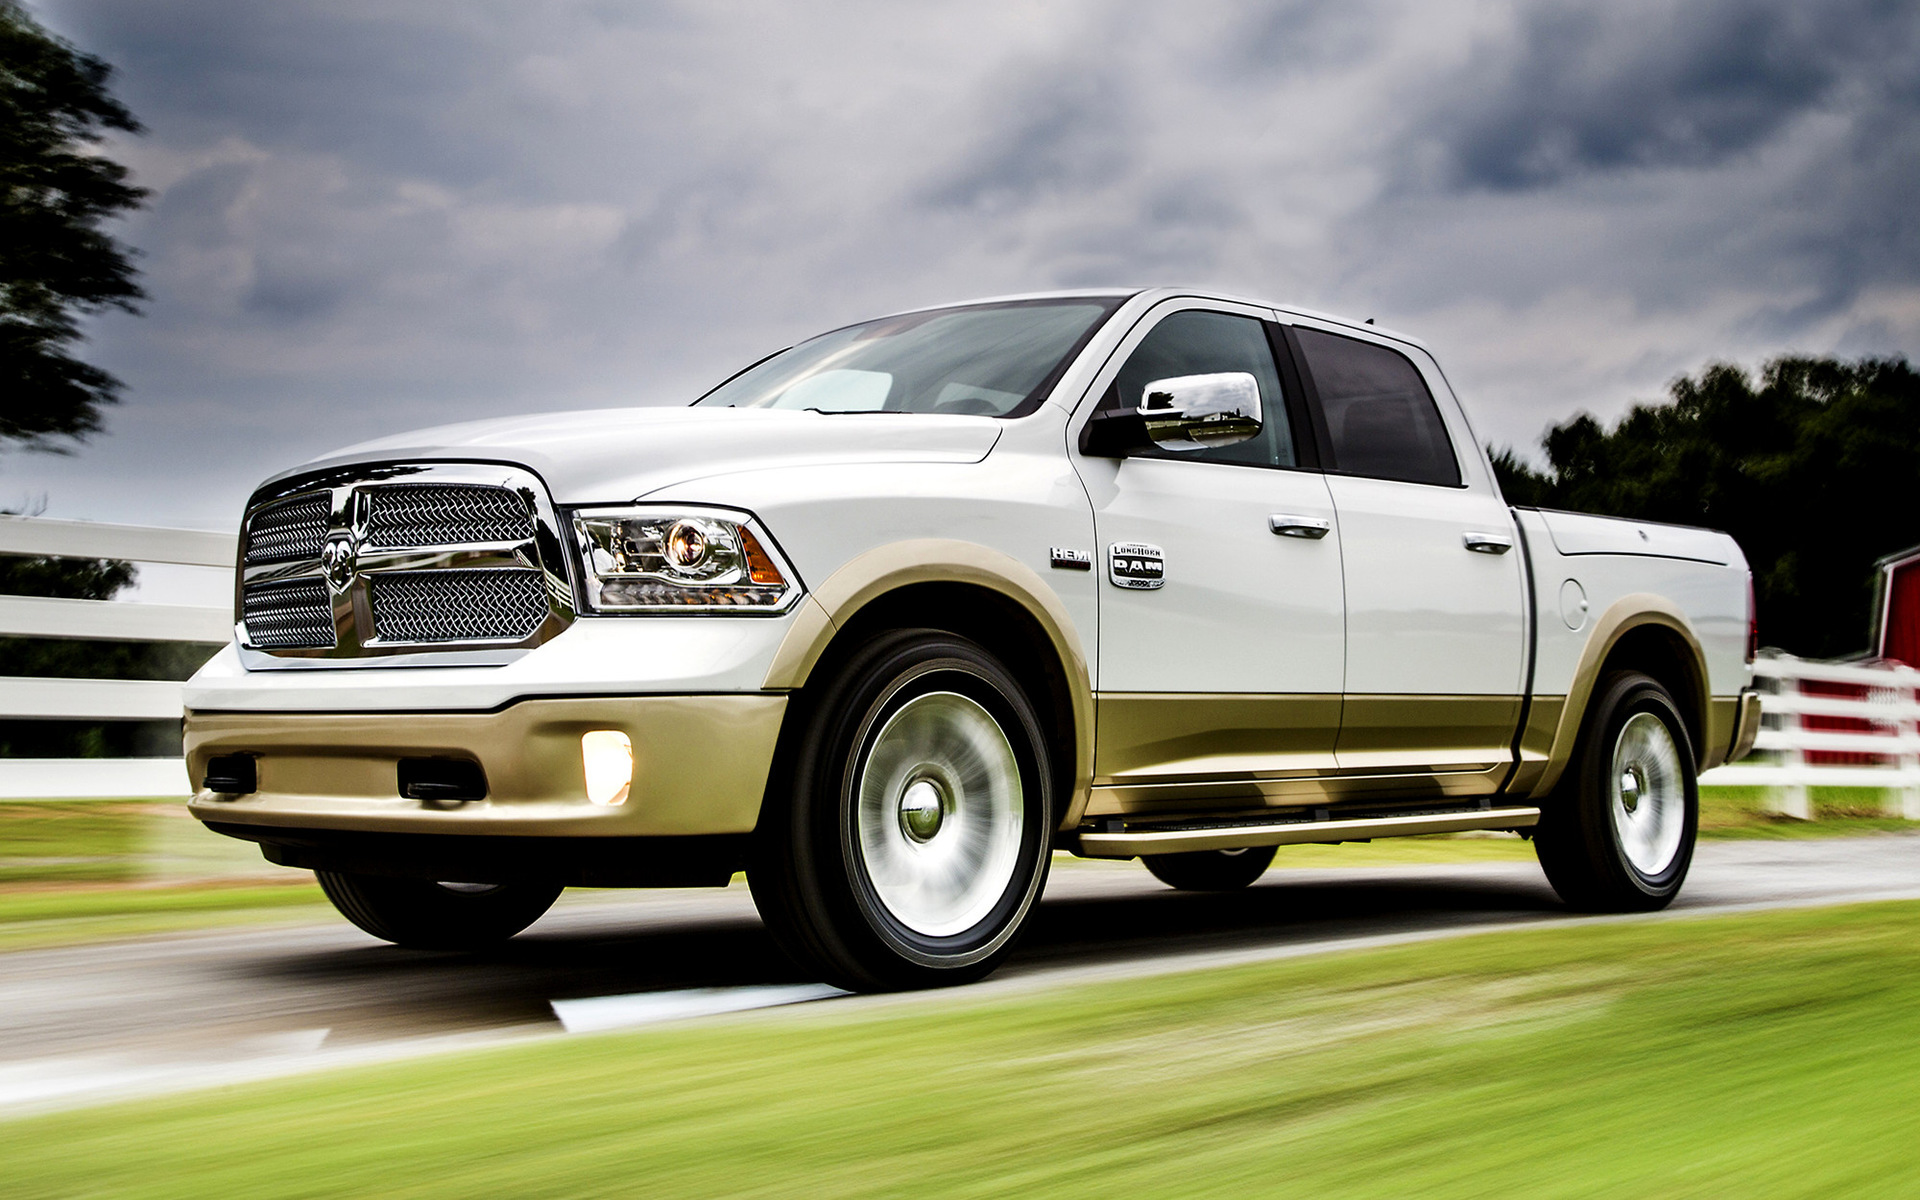 2013 Ram 1500 Laramie Longhorn Crew Cab Wallpapers And